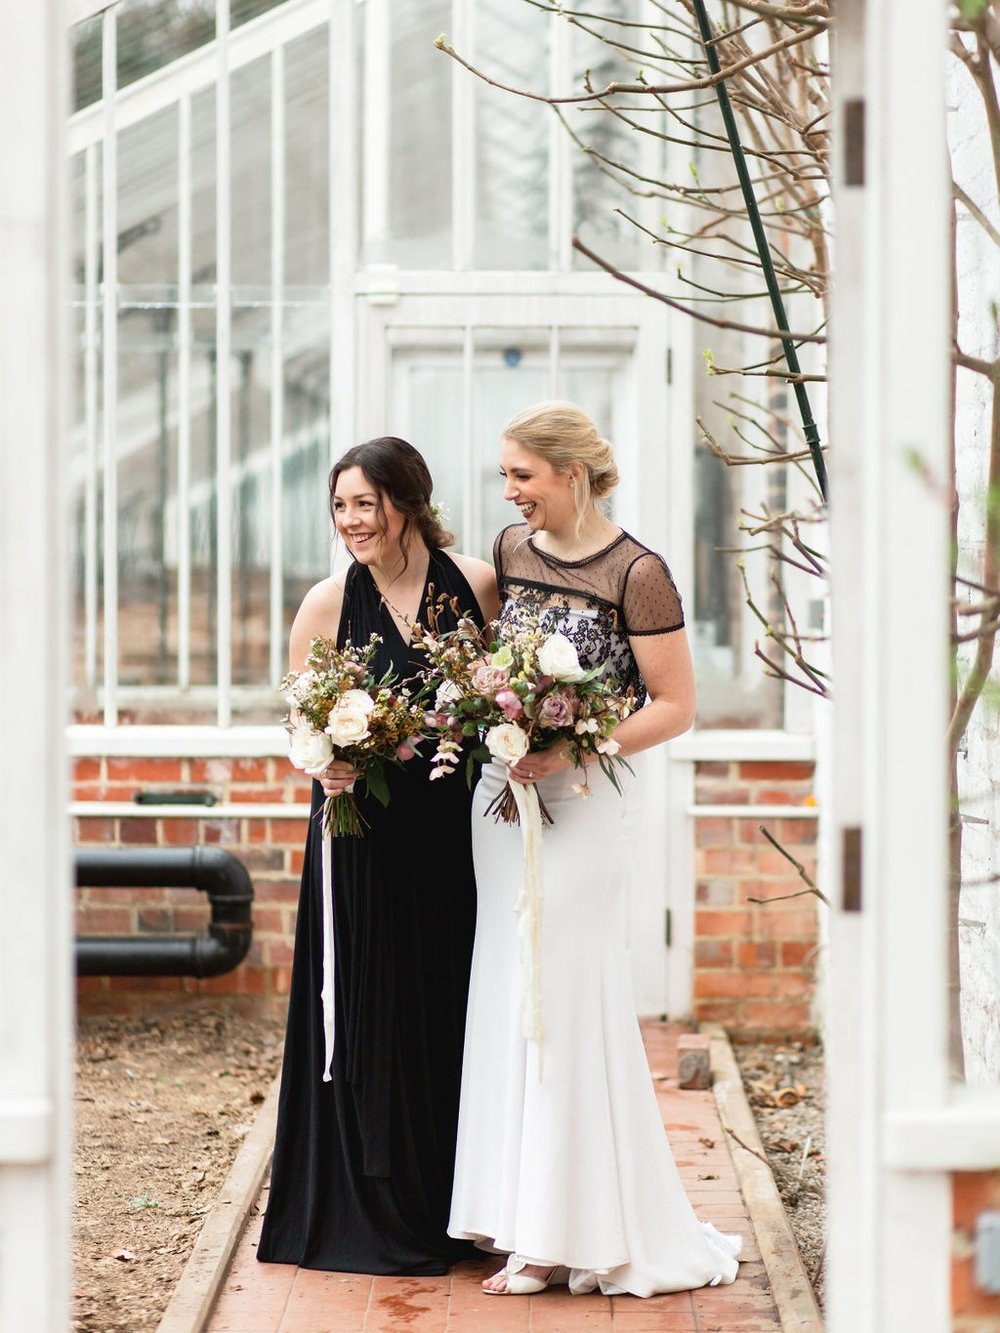 Black is back - Perfect addition for the romantic boho wedding a black maxi dress.This one is eco friendly!